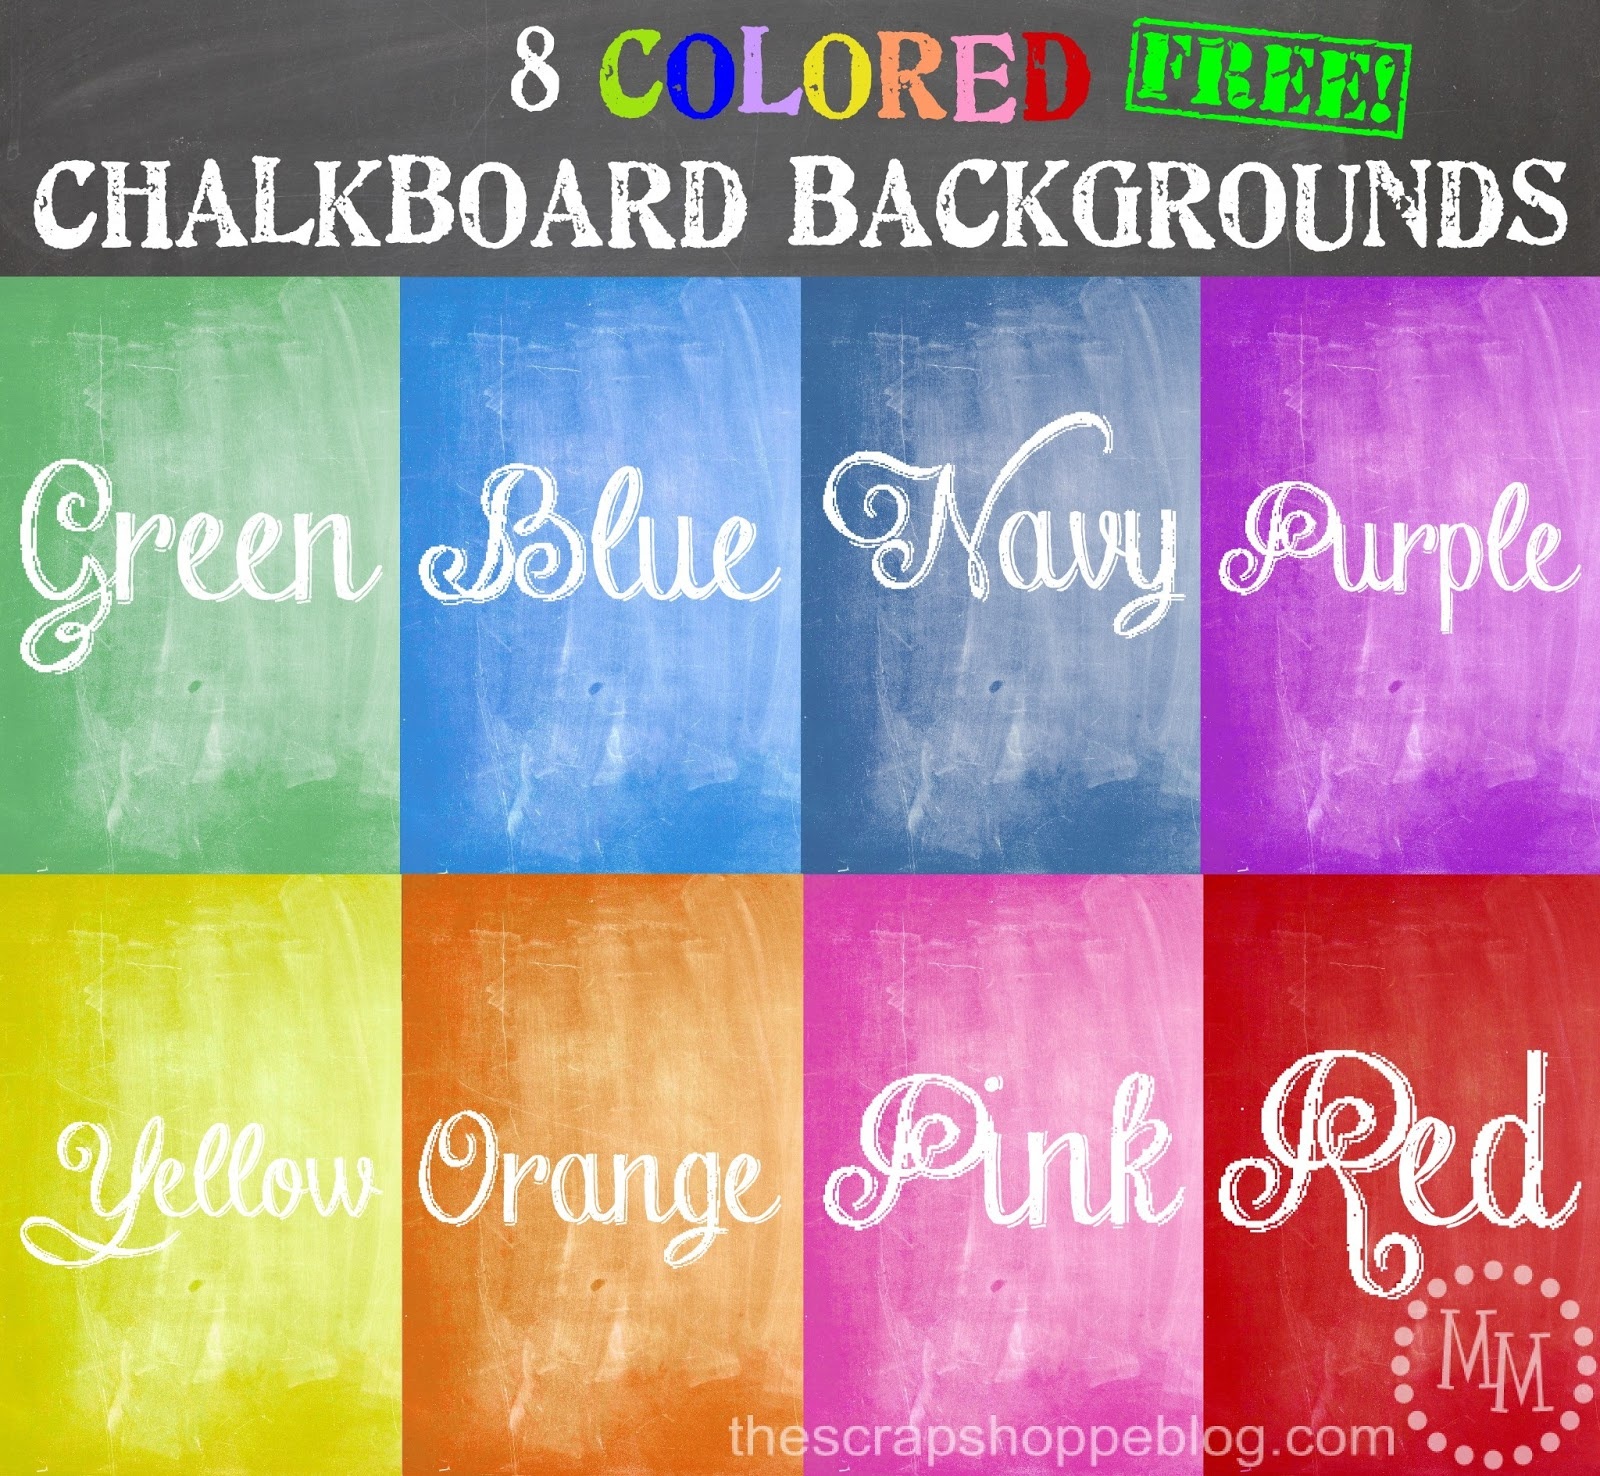 8 Colored Chalkboard Backgrounds The Scrap Shoppe All Backgrounds Color